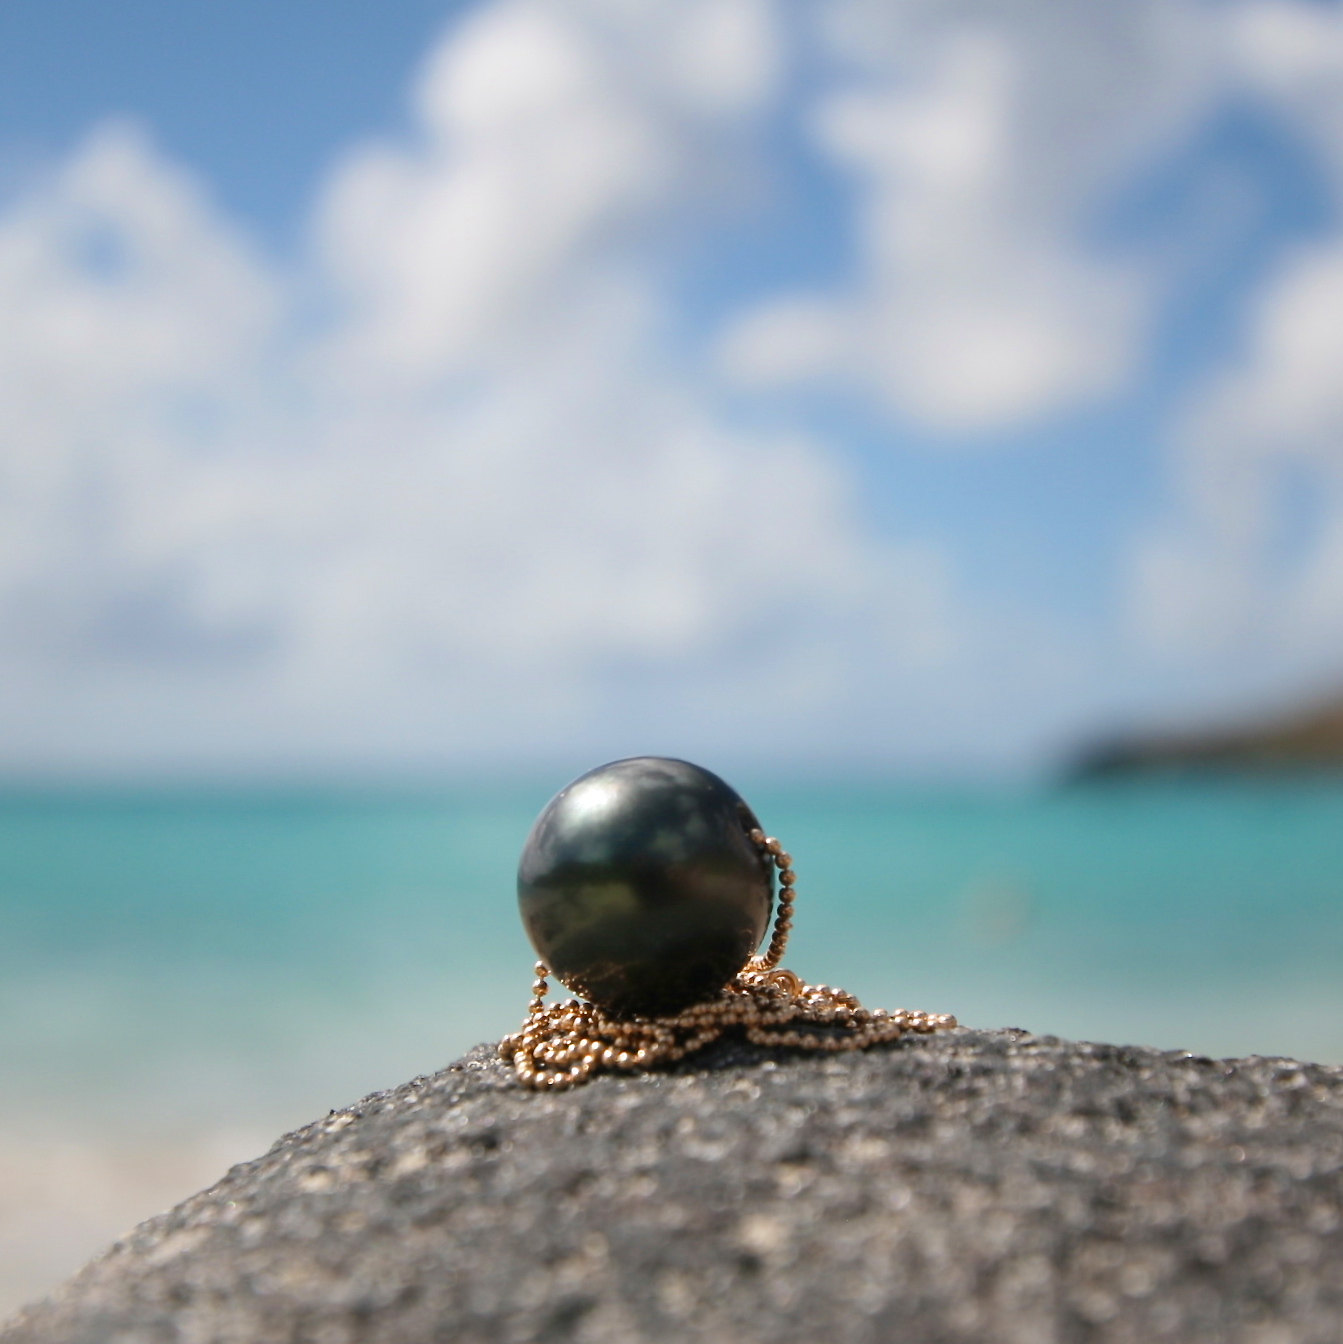 Enormous Tahitian pearl on thinnest gold ball-chain, beach jewelry, boho jewelry, Tahitian black pearls, cultured pearls, Gold chain.